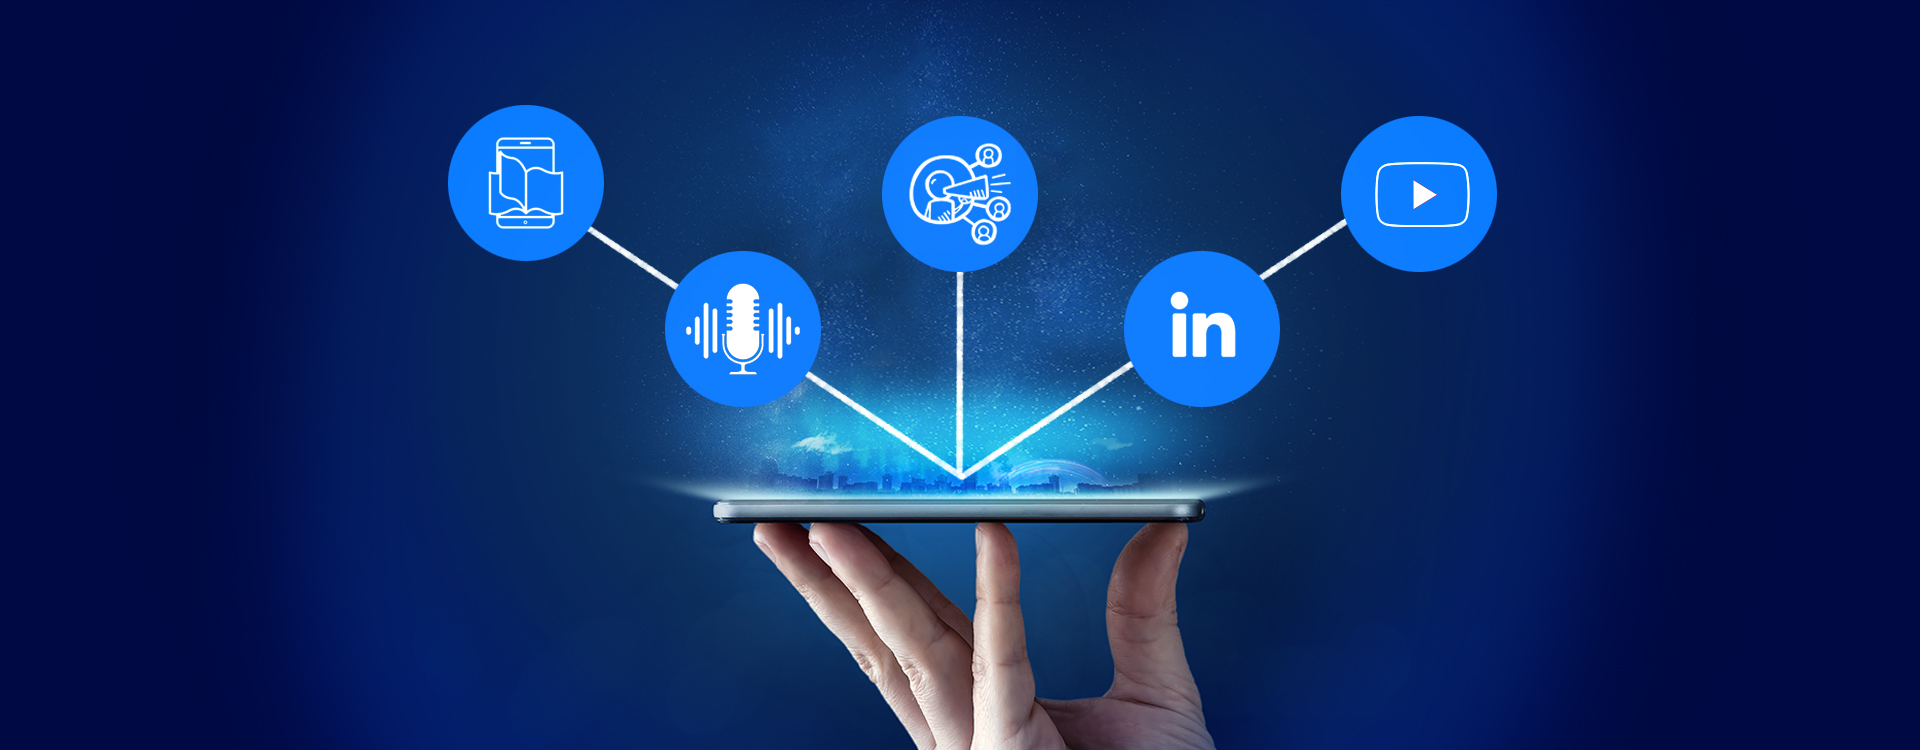 Marketing trends will include channels of LinkedIn, YouTube,E-books etc.